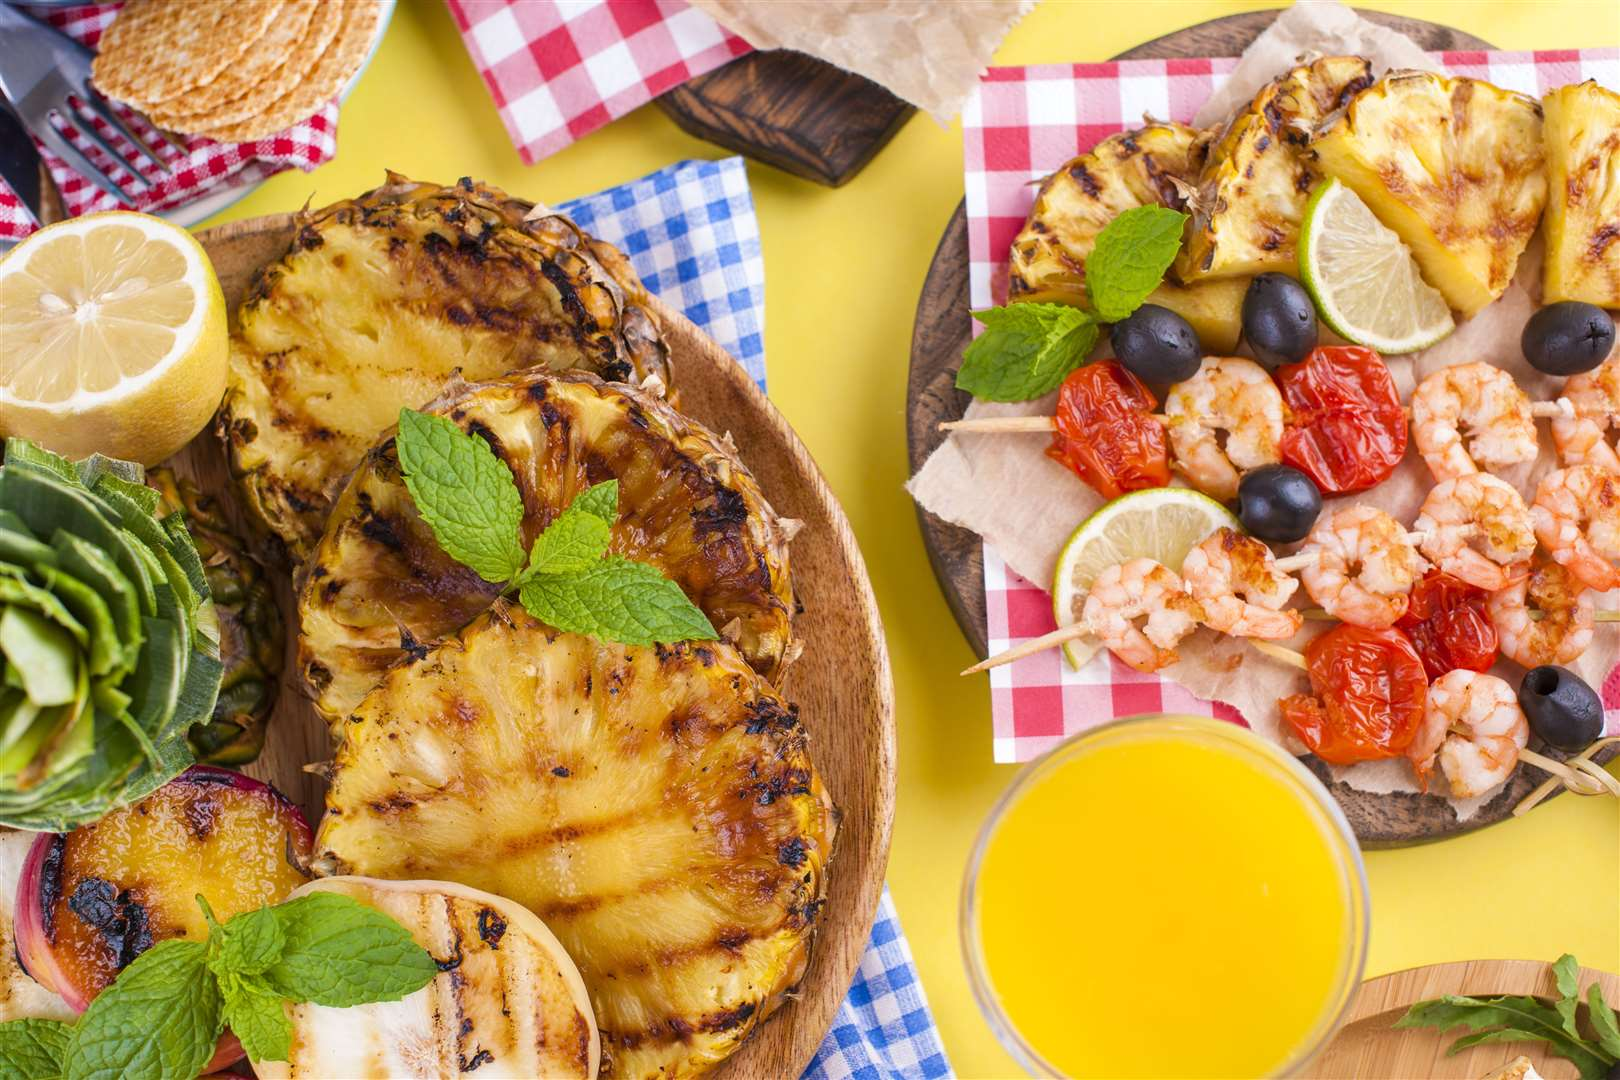 Picnic with grilled food. Sausages and corn on barbecue, shrimp, vegetables and fruits. Delicious summer lunch and plastic dishes. Top view (48521217)